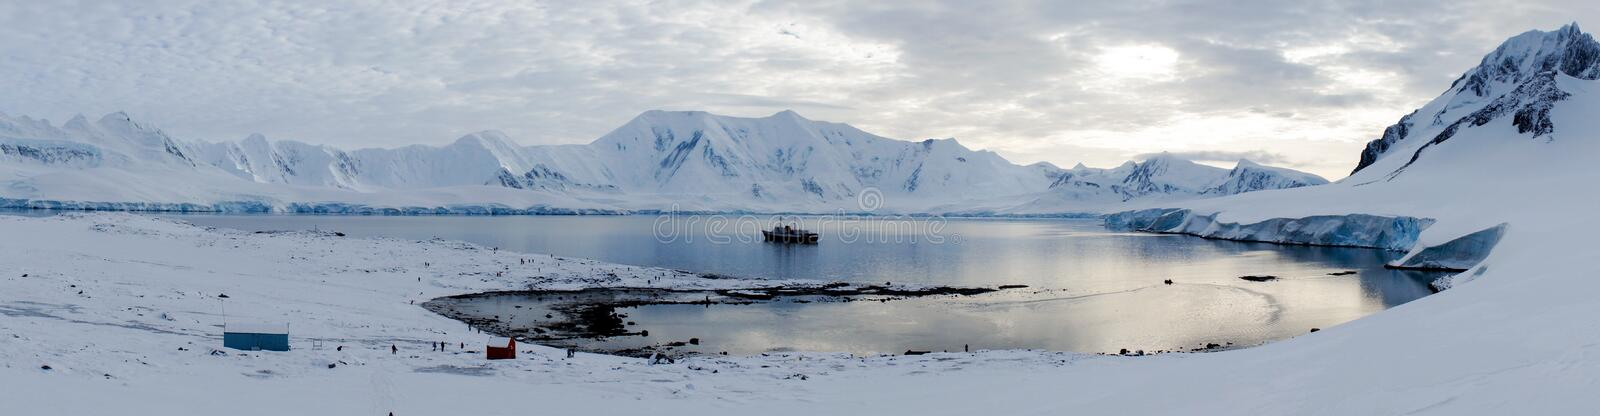 Wiencke Island / Dorian Bay landscape with snowy mountains in Antarctica.  stock image